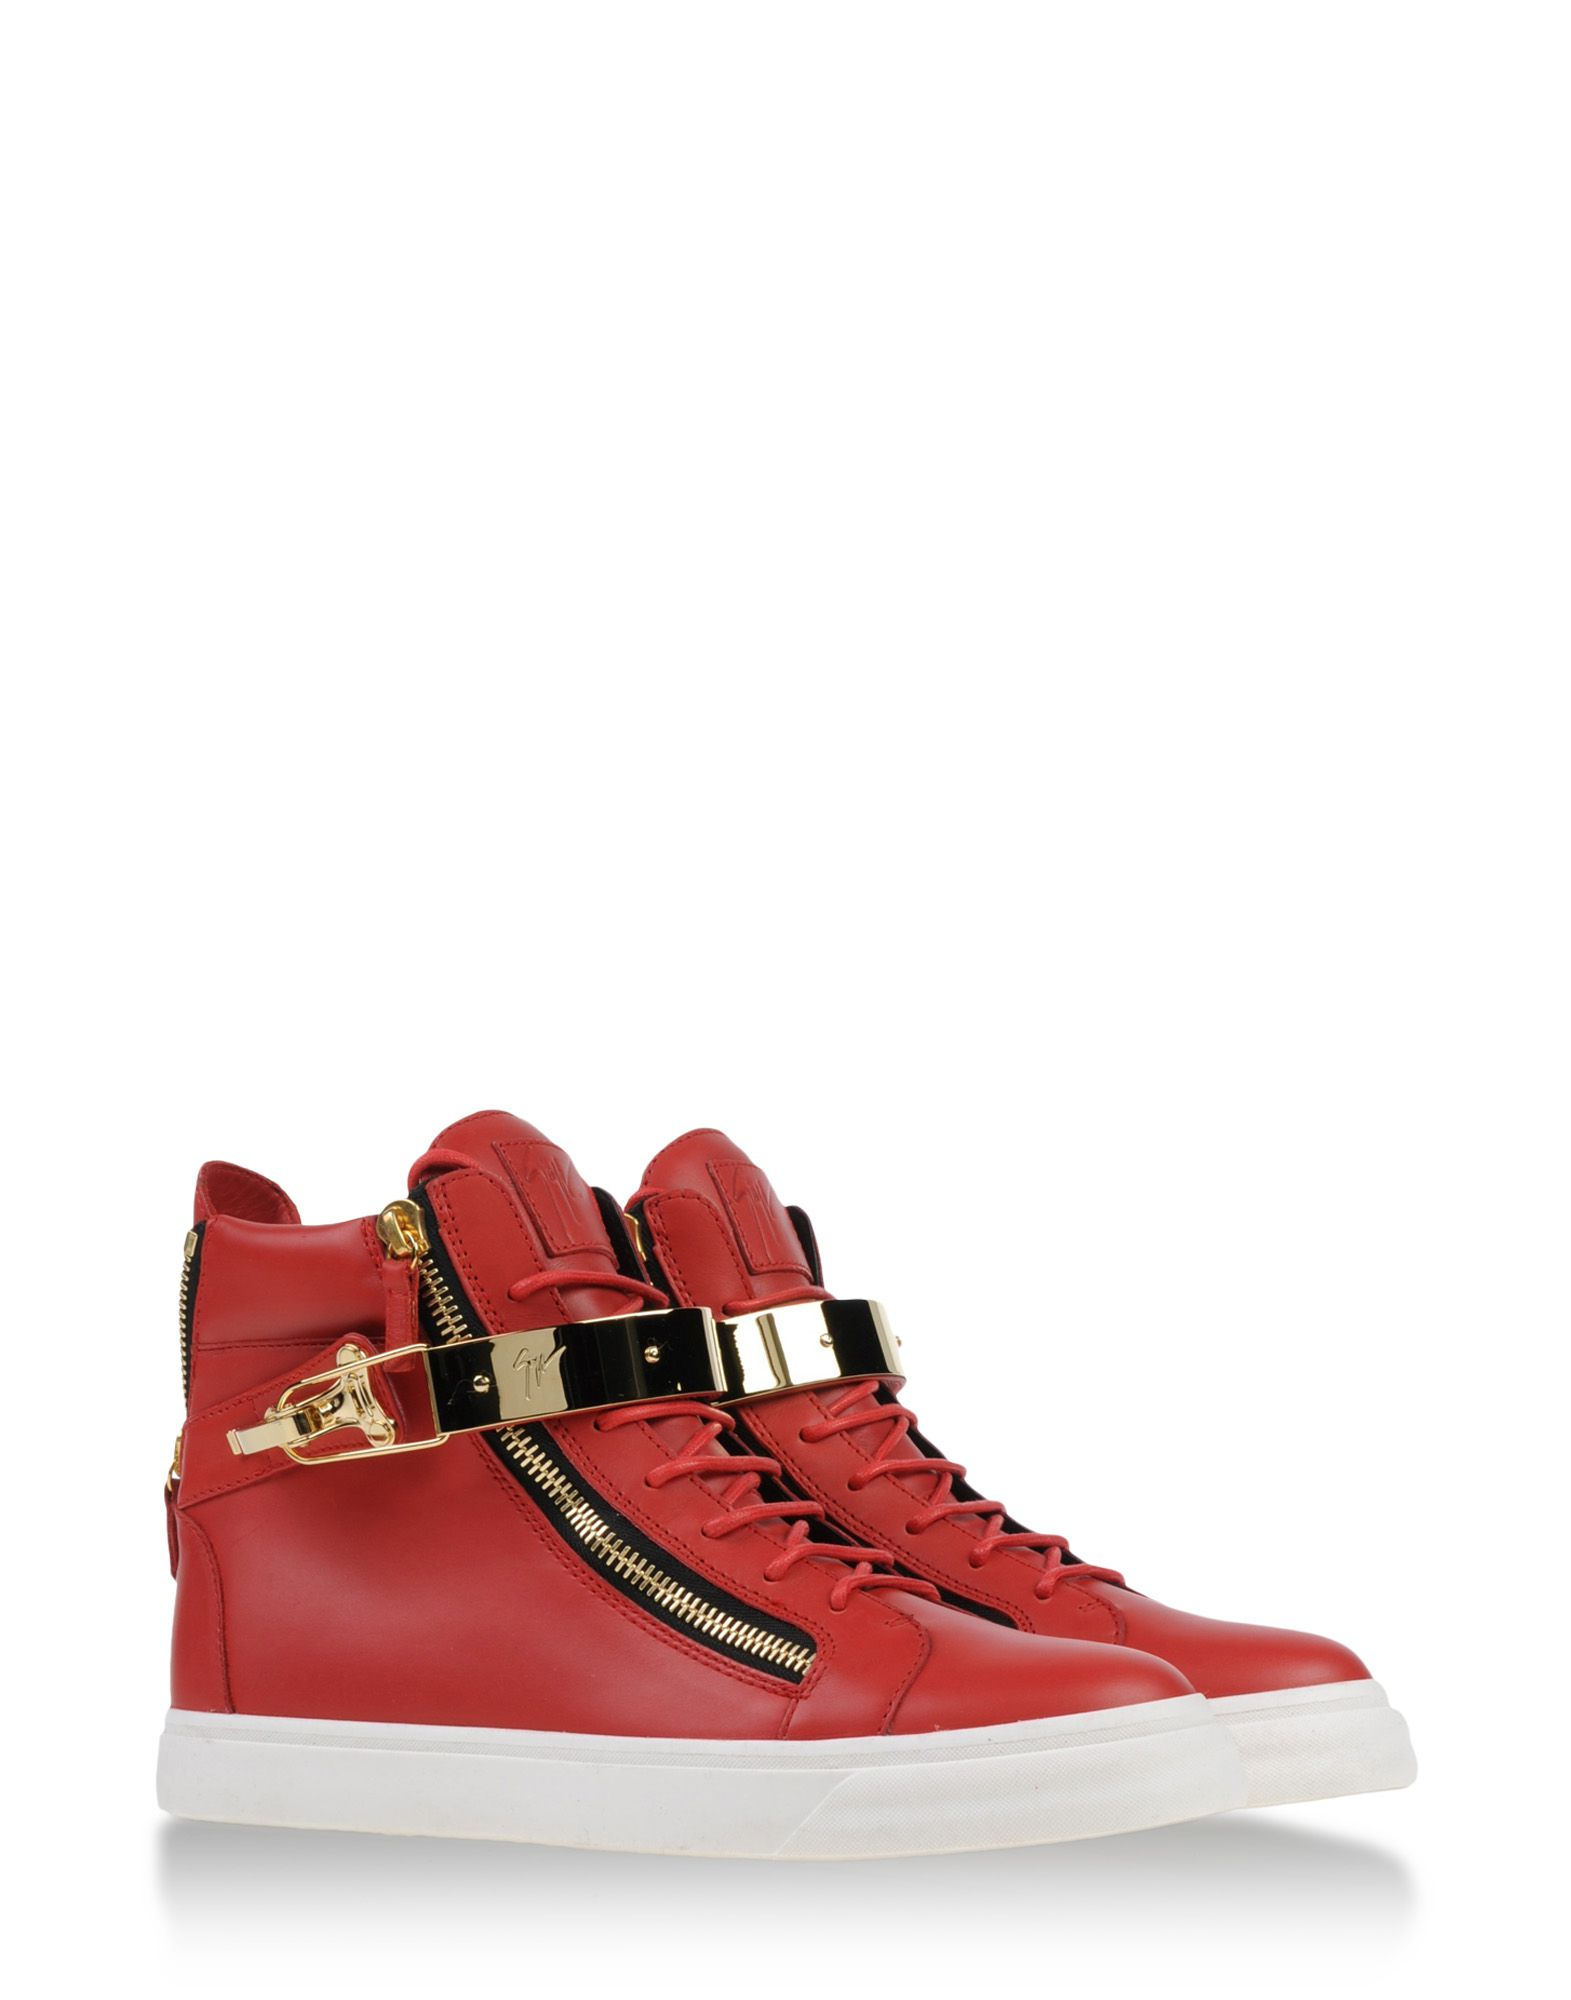 a46b04e50d4c5 Giuseppe zanotti High-top Sneakers in Red for Men   Lyst